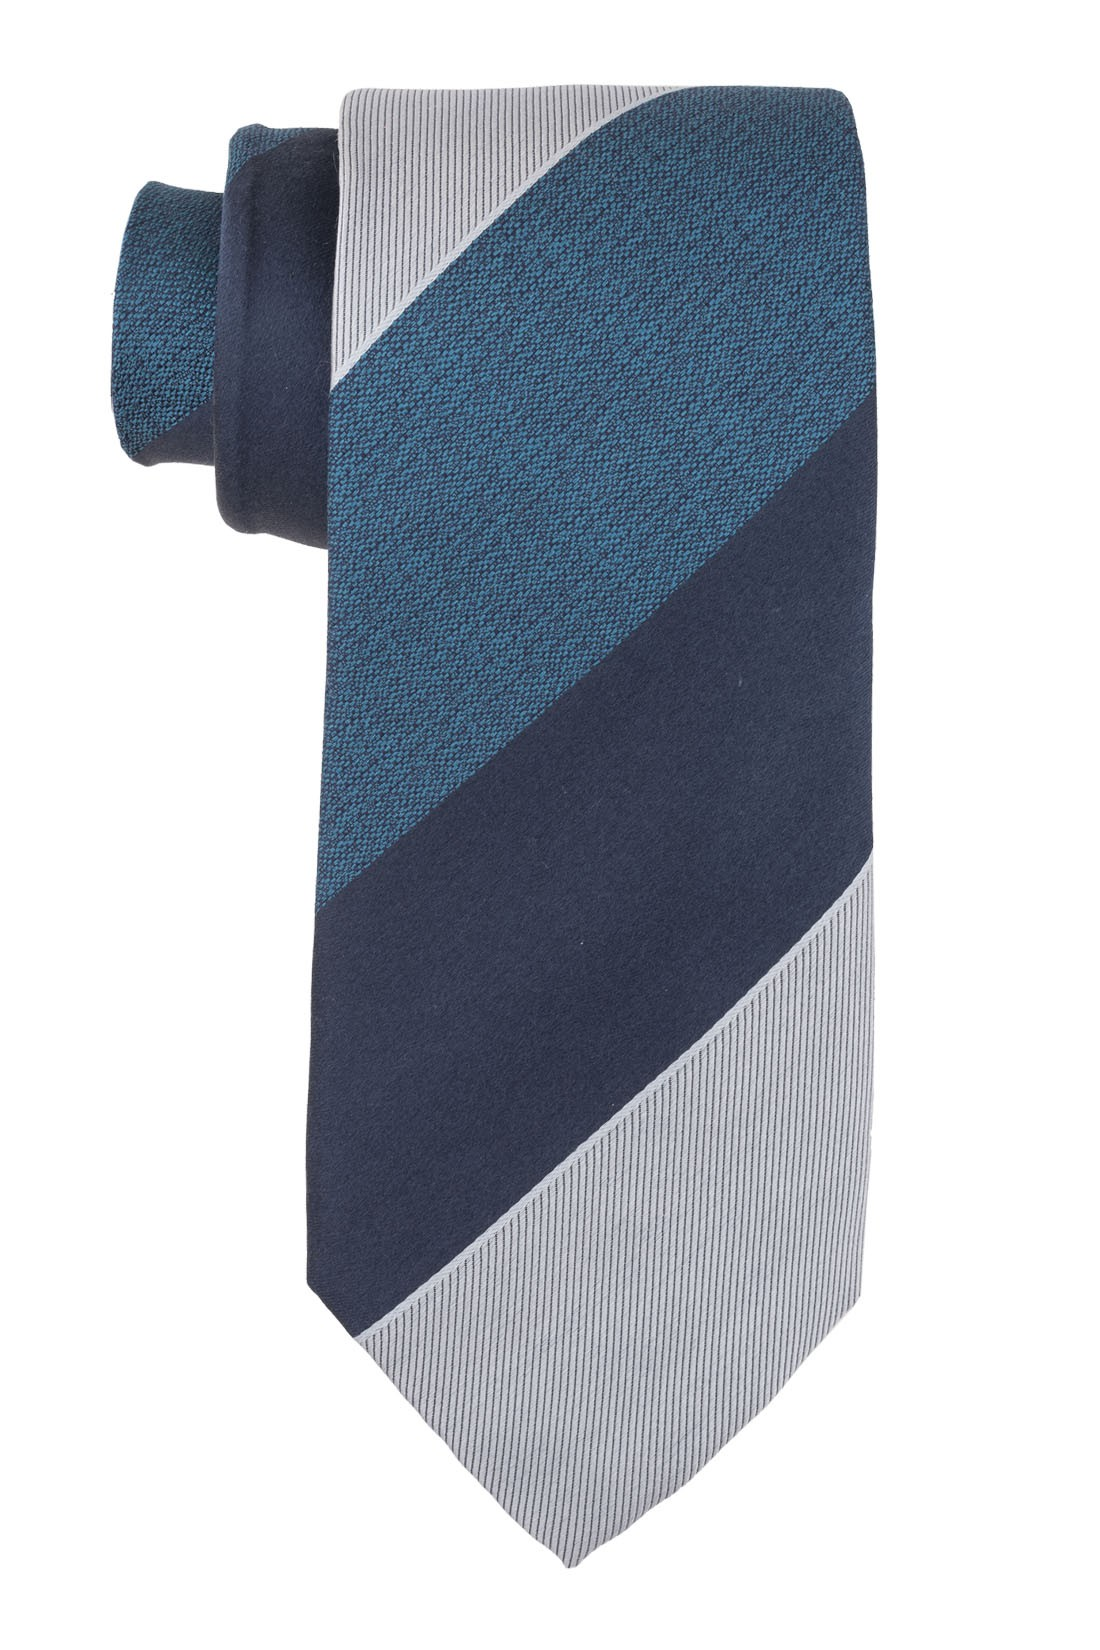 Scholar Stripe Teal and Grey 100% Silk Necktie